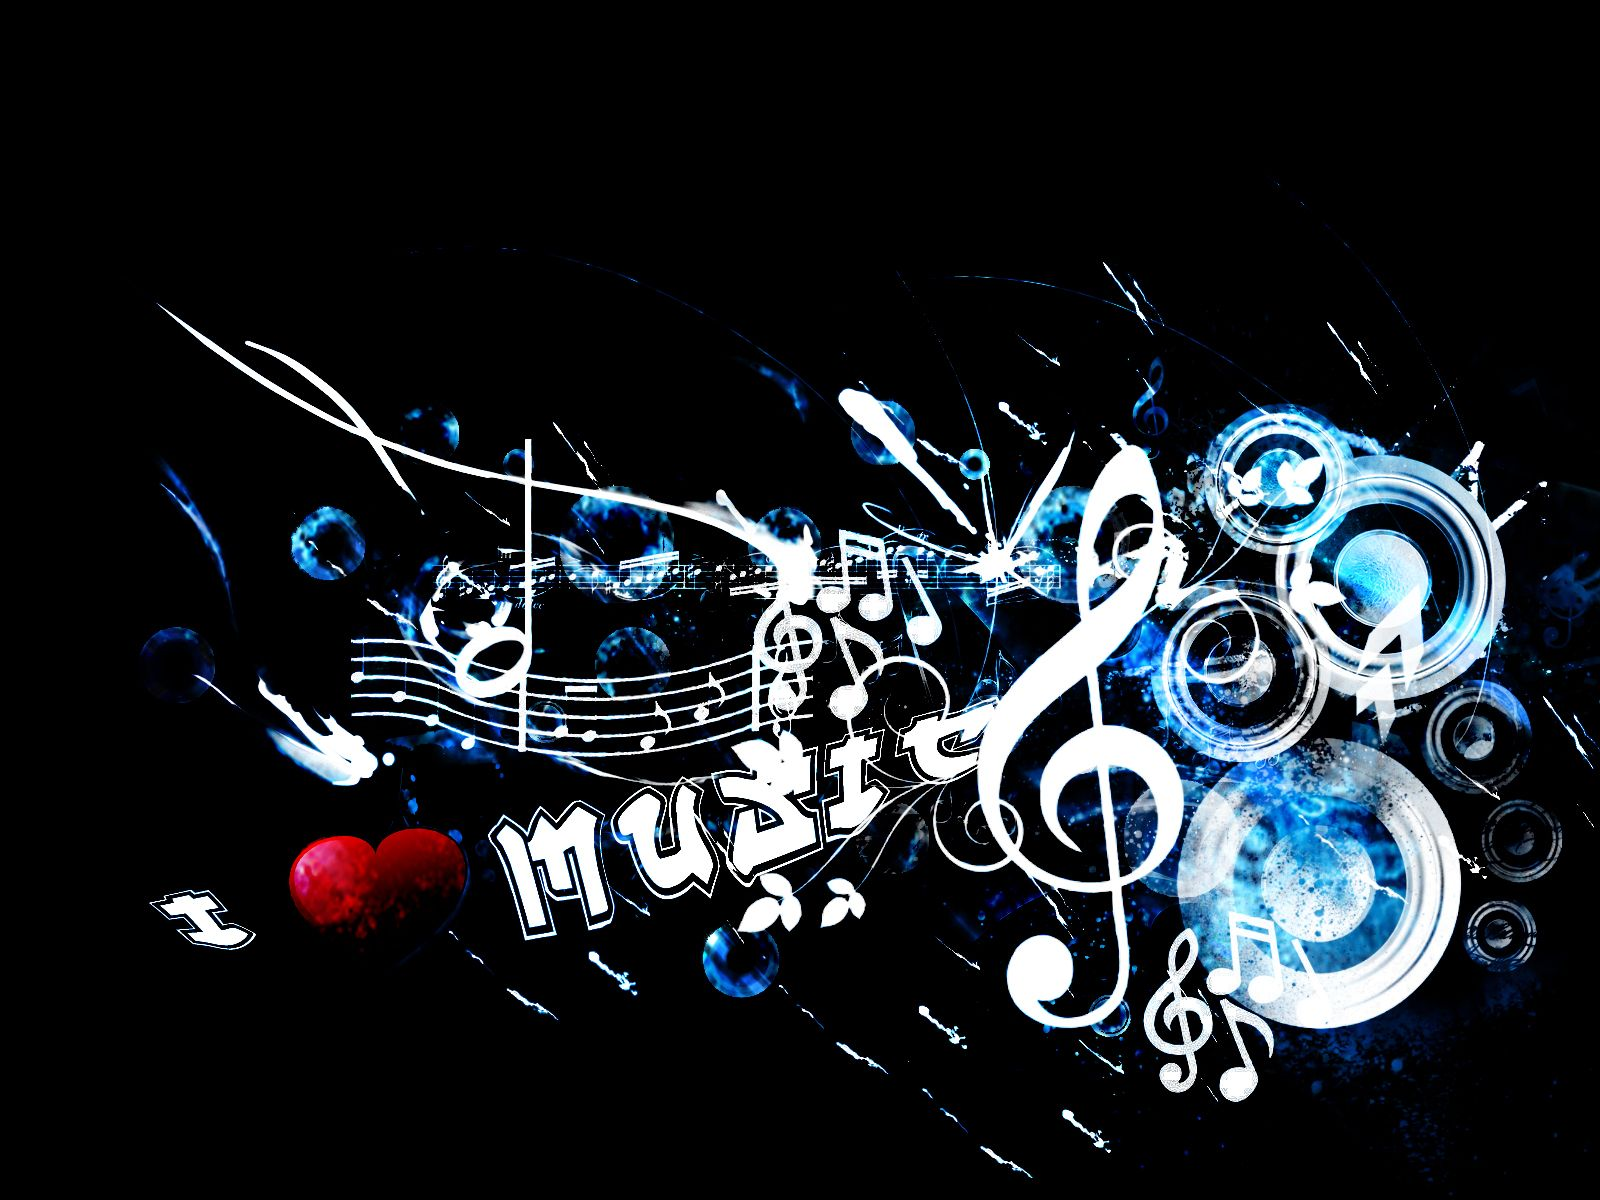 Music Wallpaper For Pc In 2020 Music Wallpaper Music Images Music Backgrounds